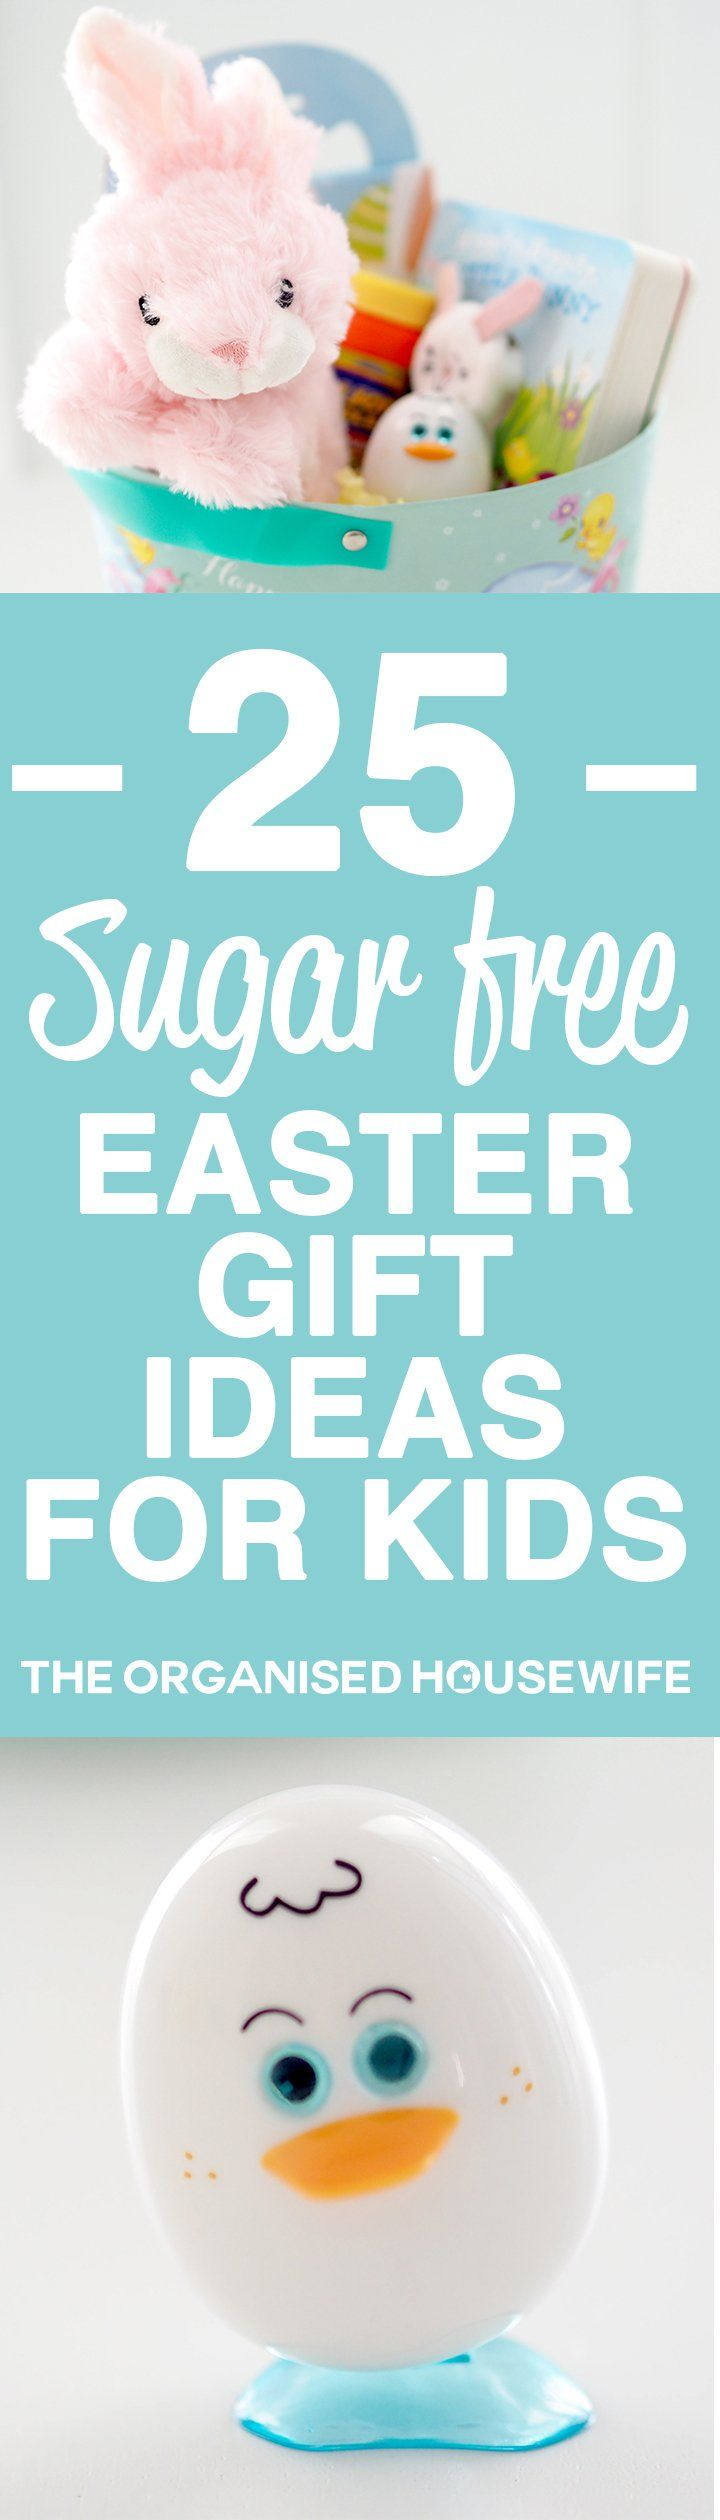 197 best easter images on pinterest organised housewife easter 197 best easter images on pinterest organised housewife easter ideas and easter crafts negle Images